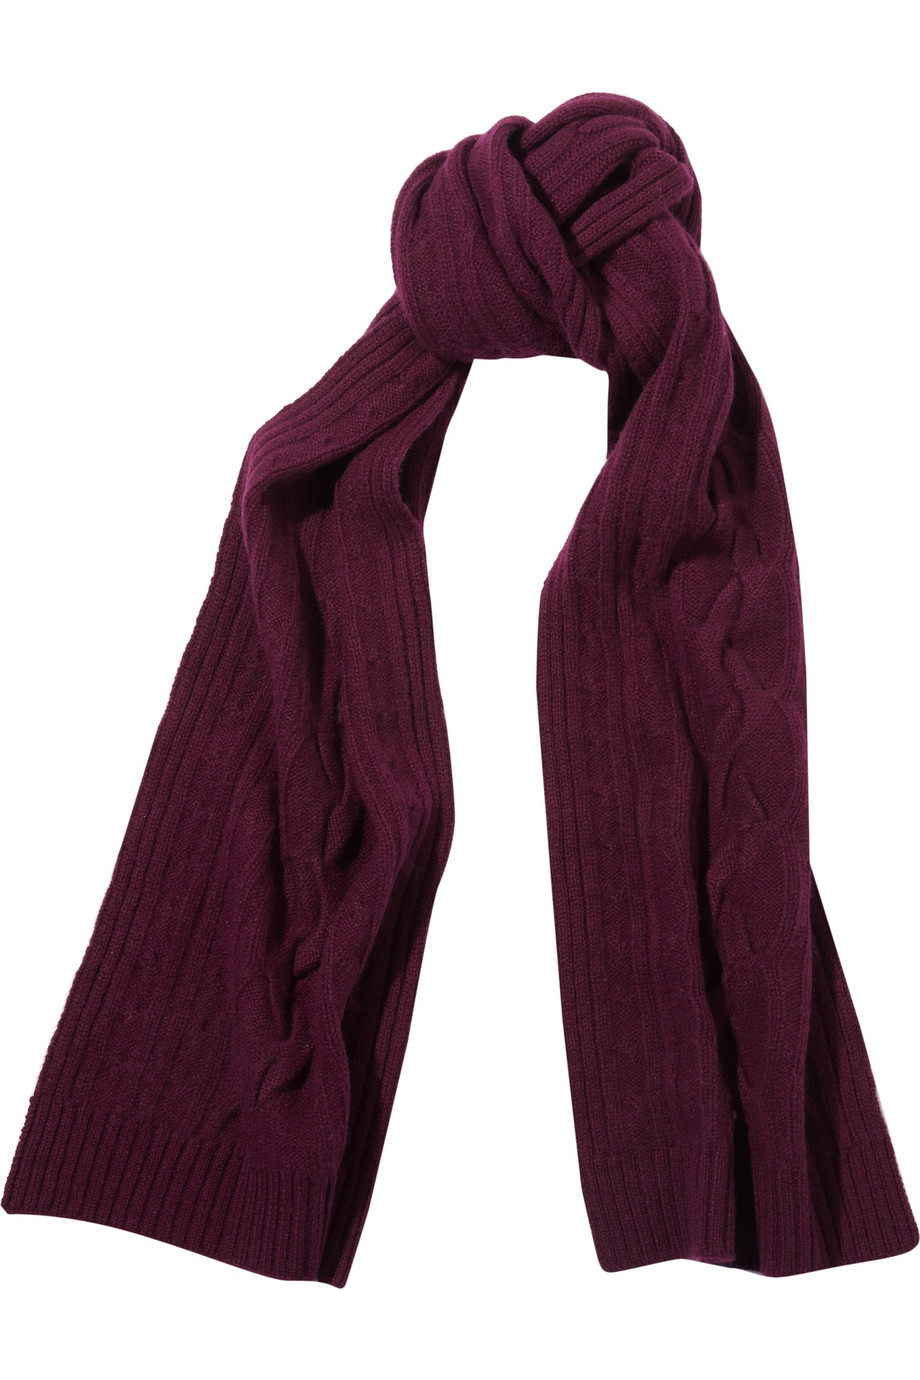 Knitting Pattern For Mens Cashmere Scarf : N.Peal Cashmere Cable-knit cashmere scarf - 50% Off Now at THE OUTNET